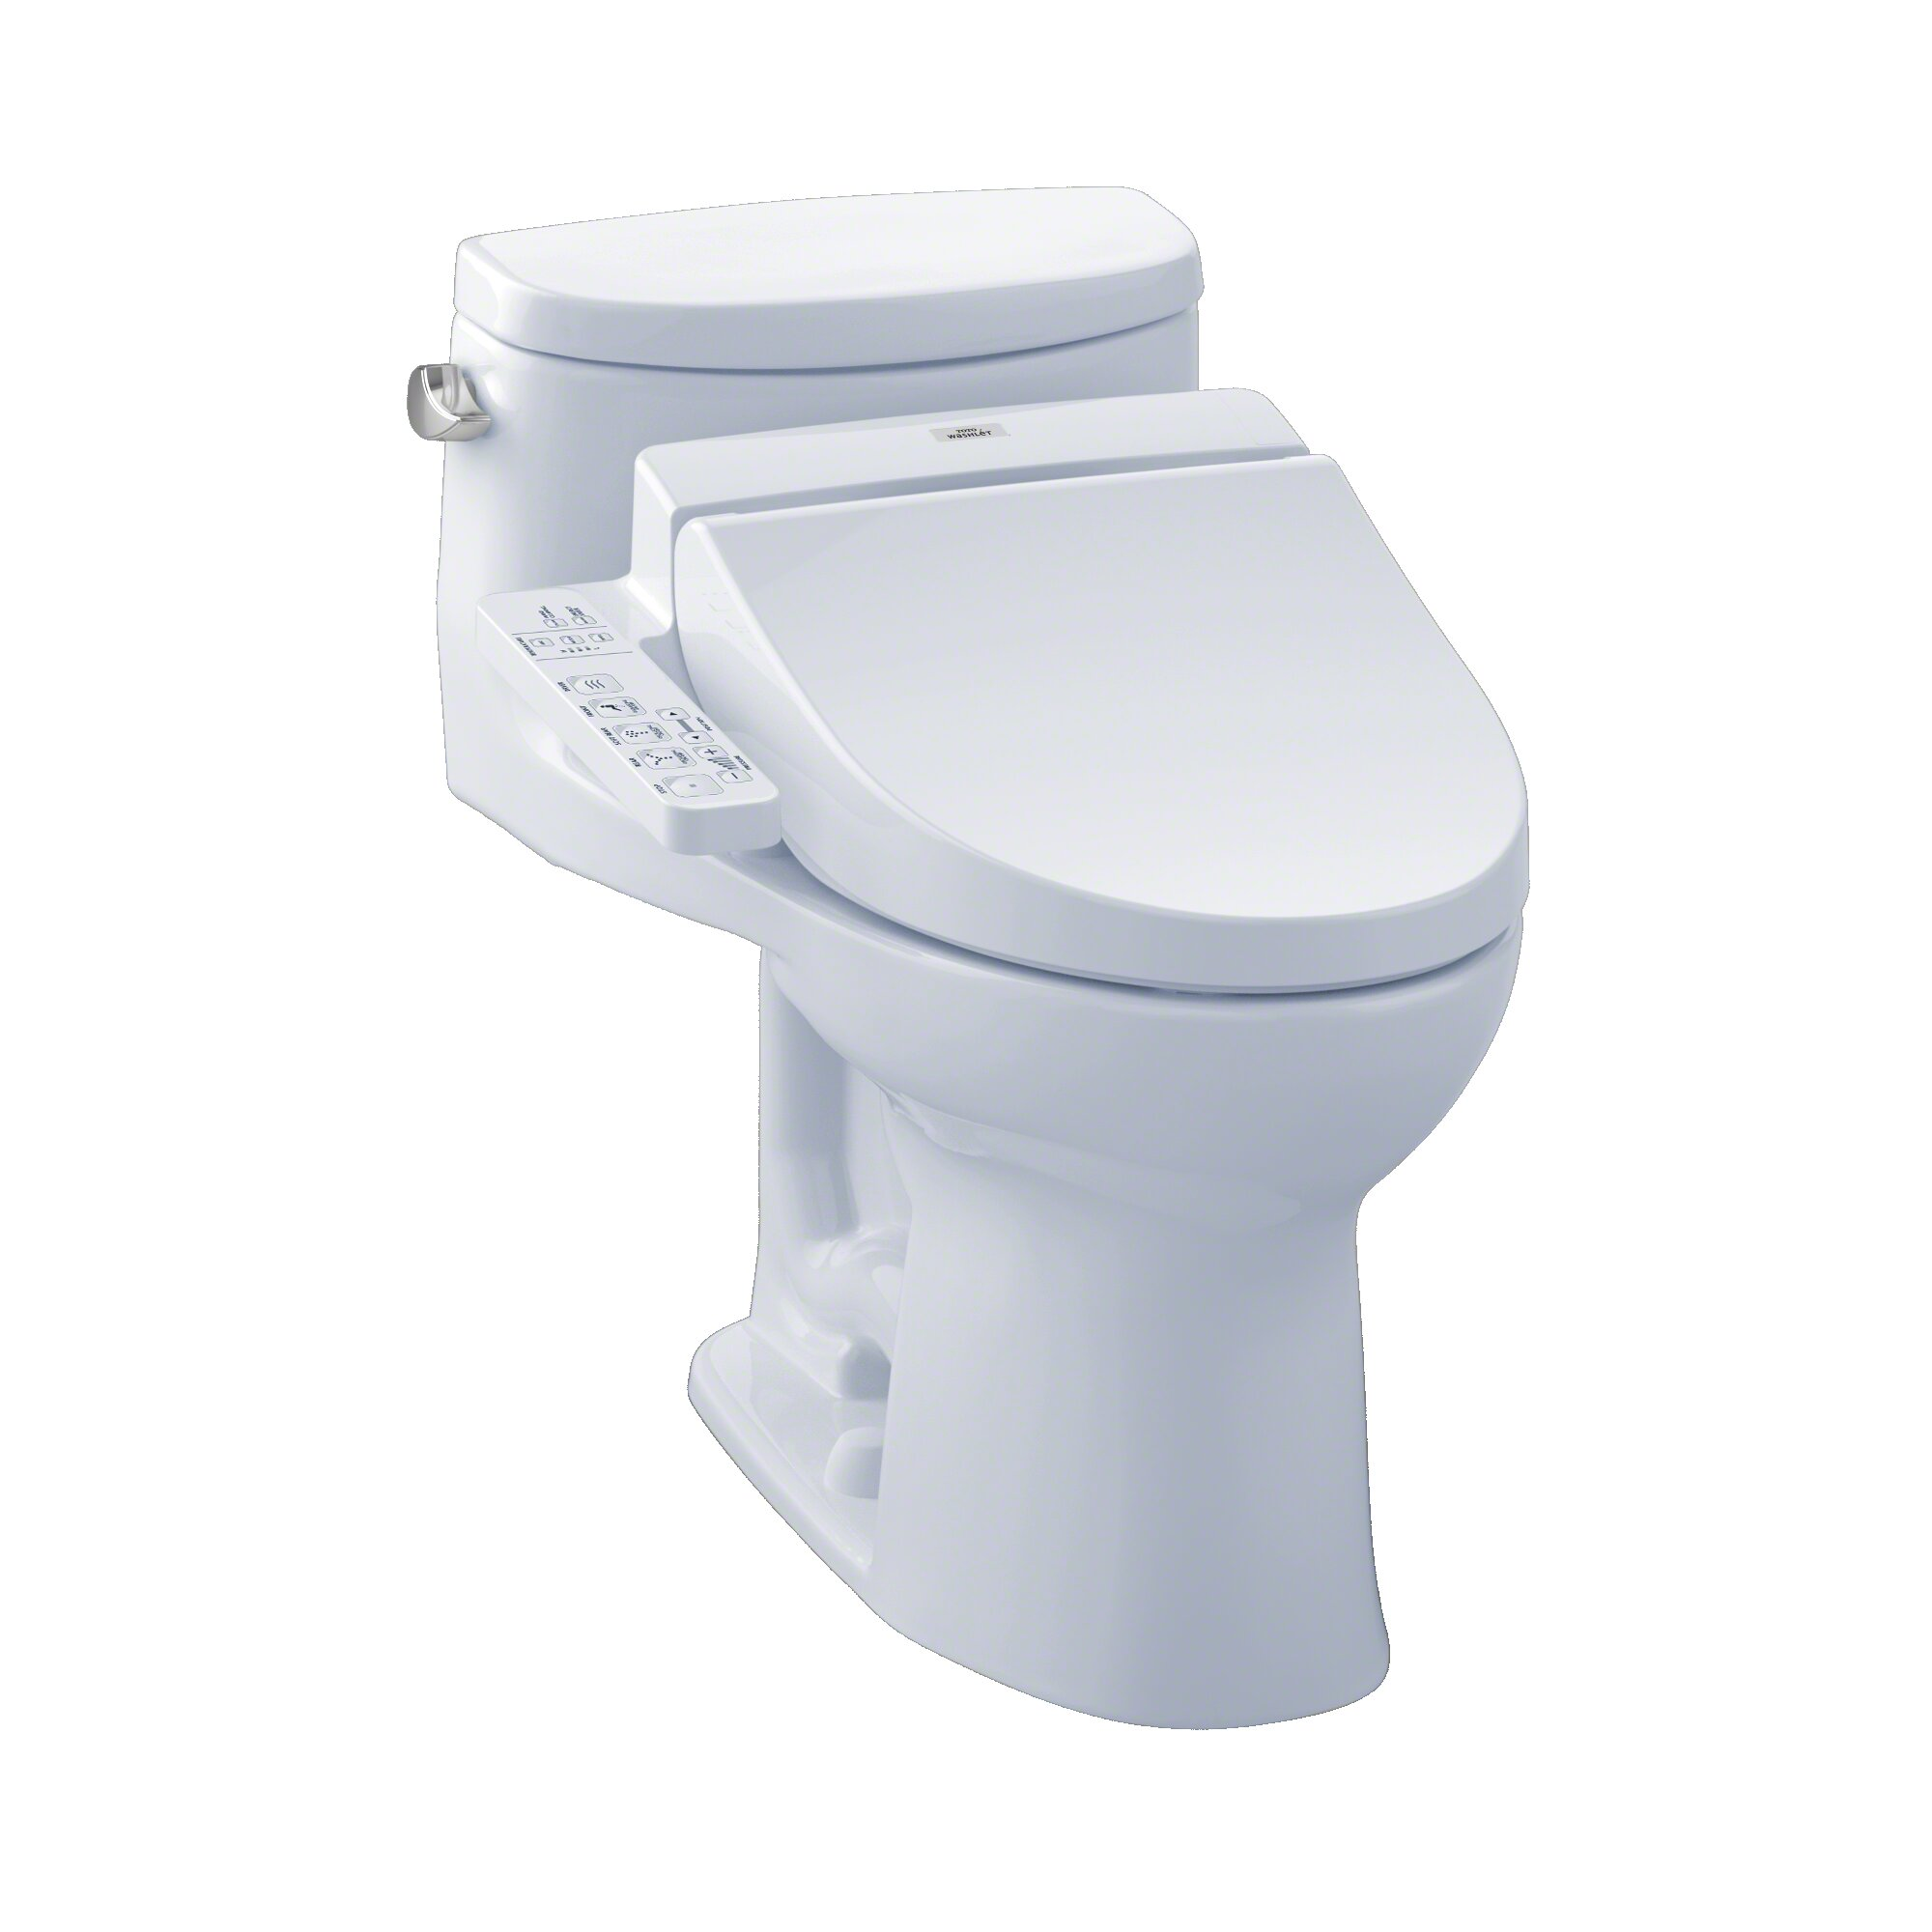 Toto Supreme 1 28 Gpf Elongated Bidet Toilet With C100 Electronic Bidet Seat Reviews Wayfair